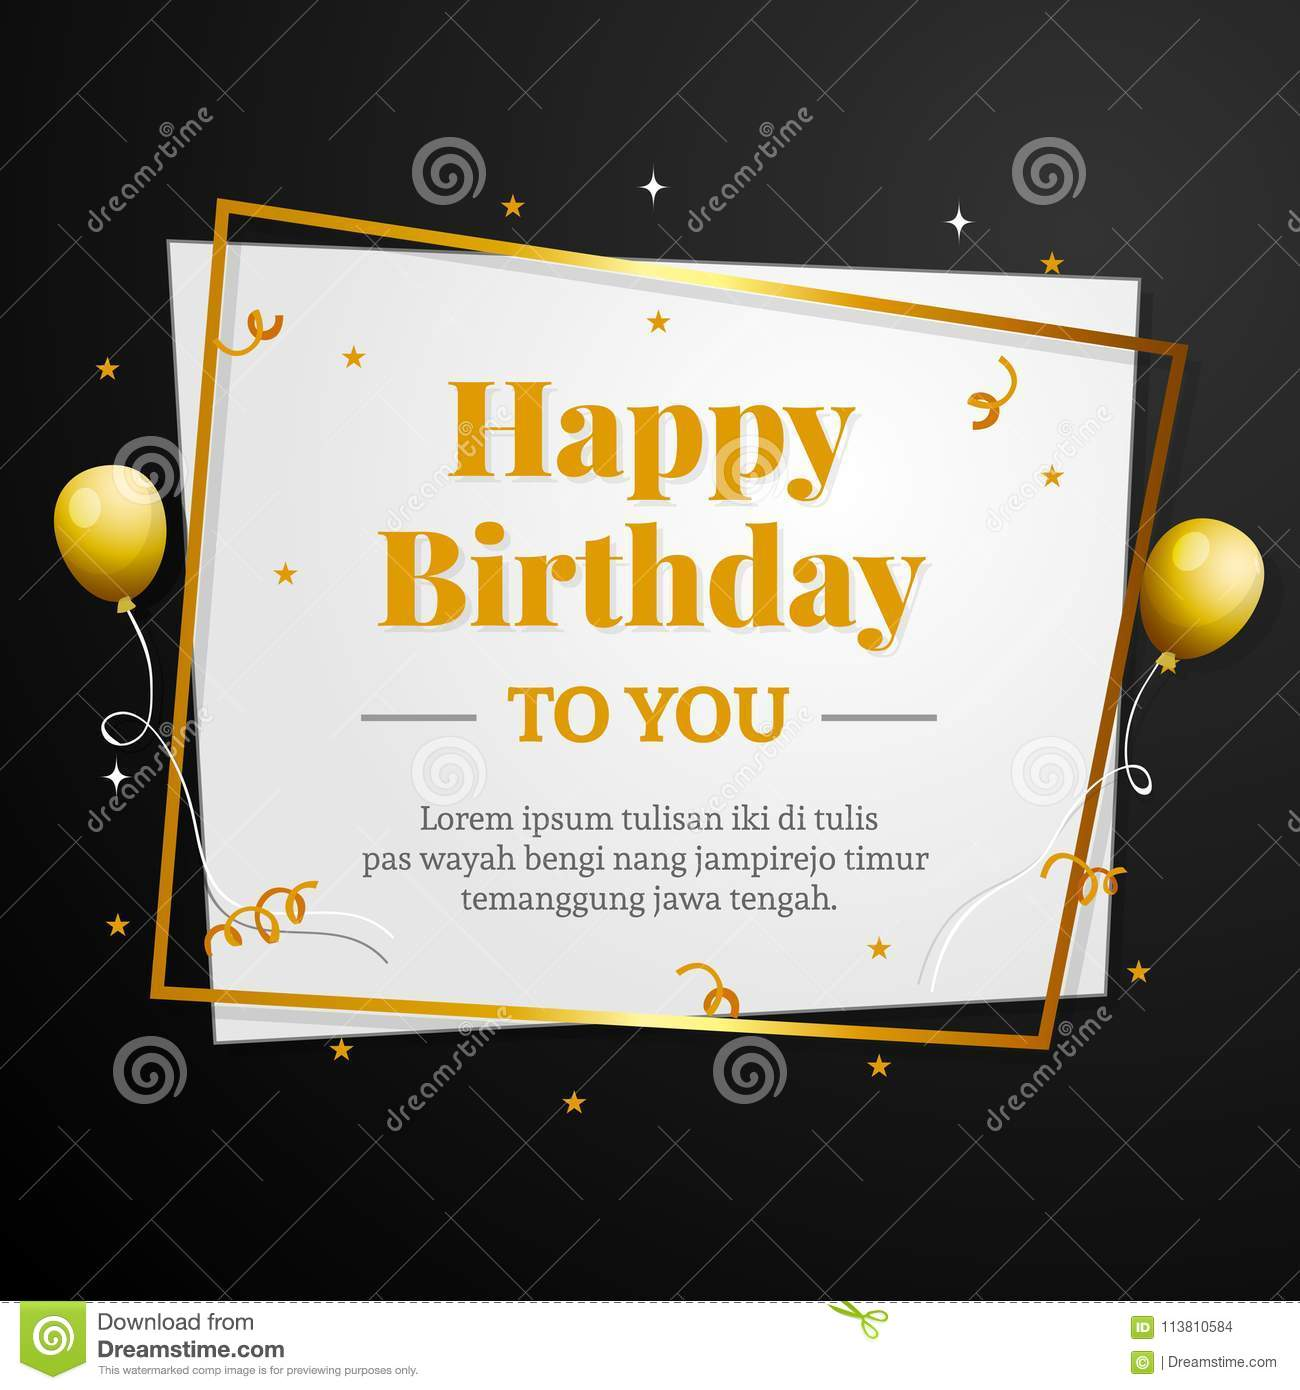 Happy Birthday To You Greeting Card Elegant Professional Banner